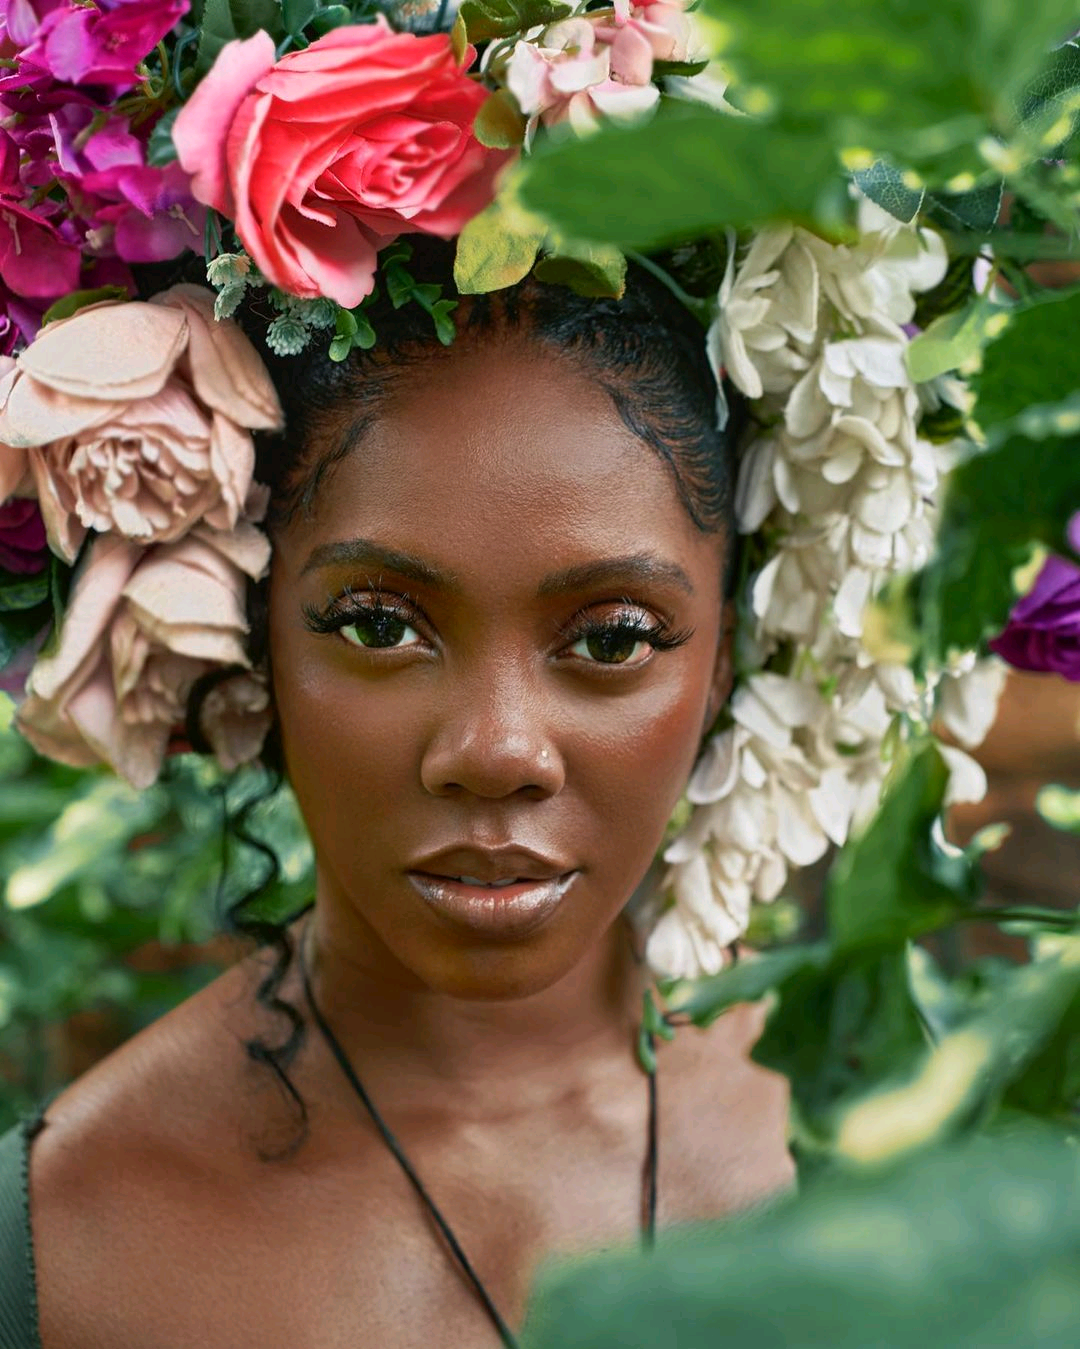 'I Put The Music First Without Fear,' Tiwa Savage Says As She Releases New EP